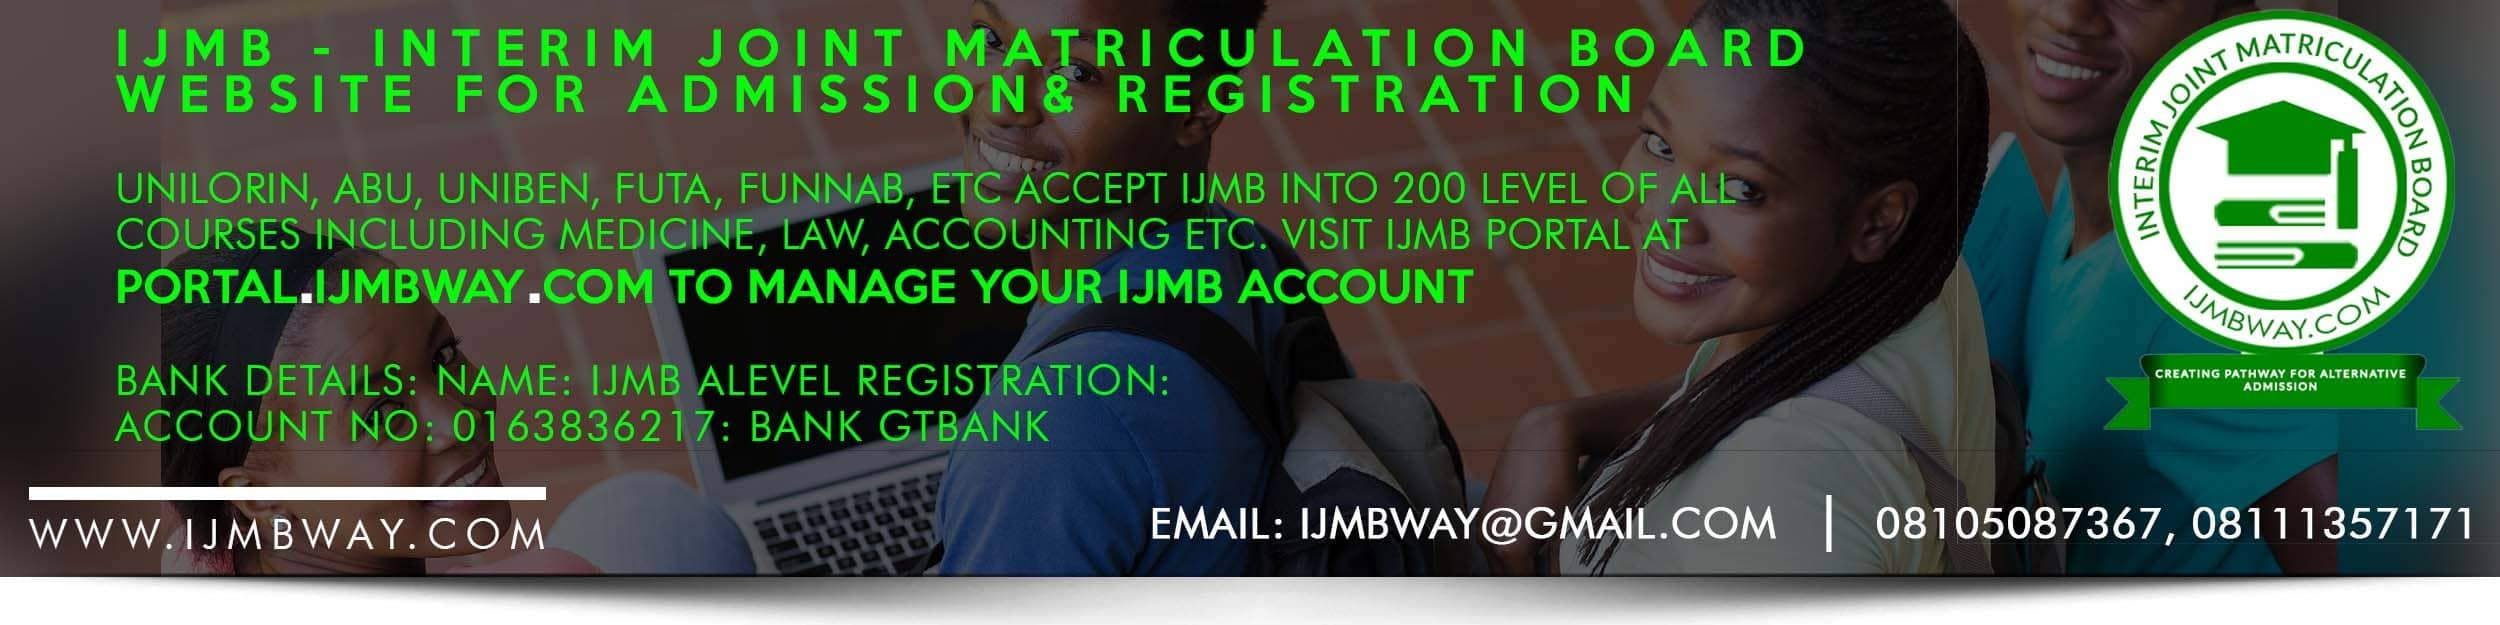 IJMB – Official IJMB Website, IJMB Registration Portal & Admission